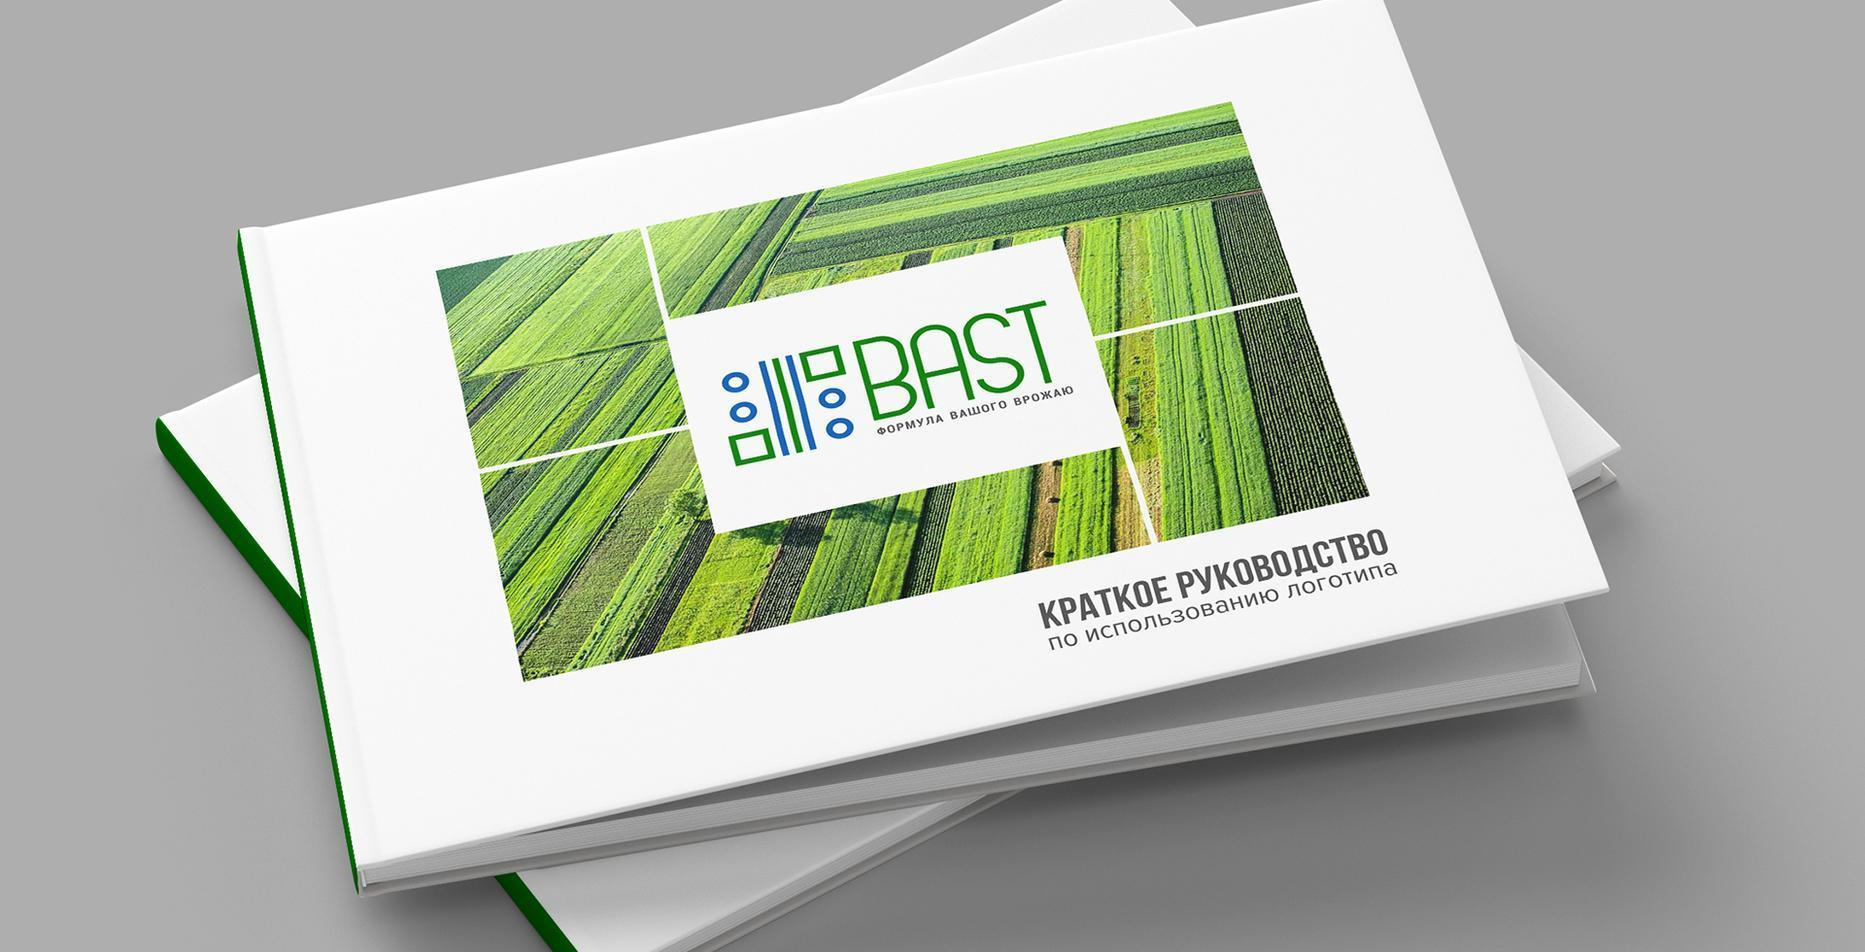 Case: website development, logo, video and branding for Bast — Rubarb - Image - 5